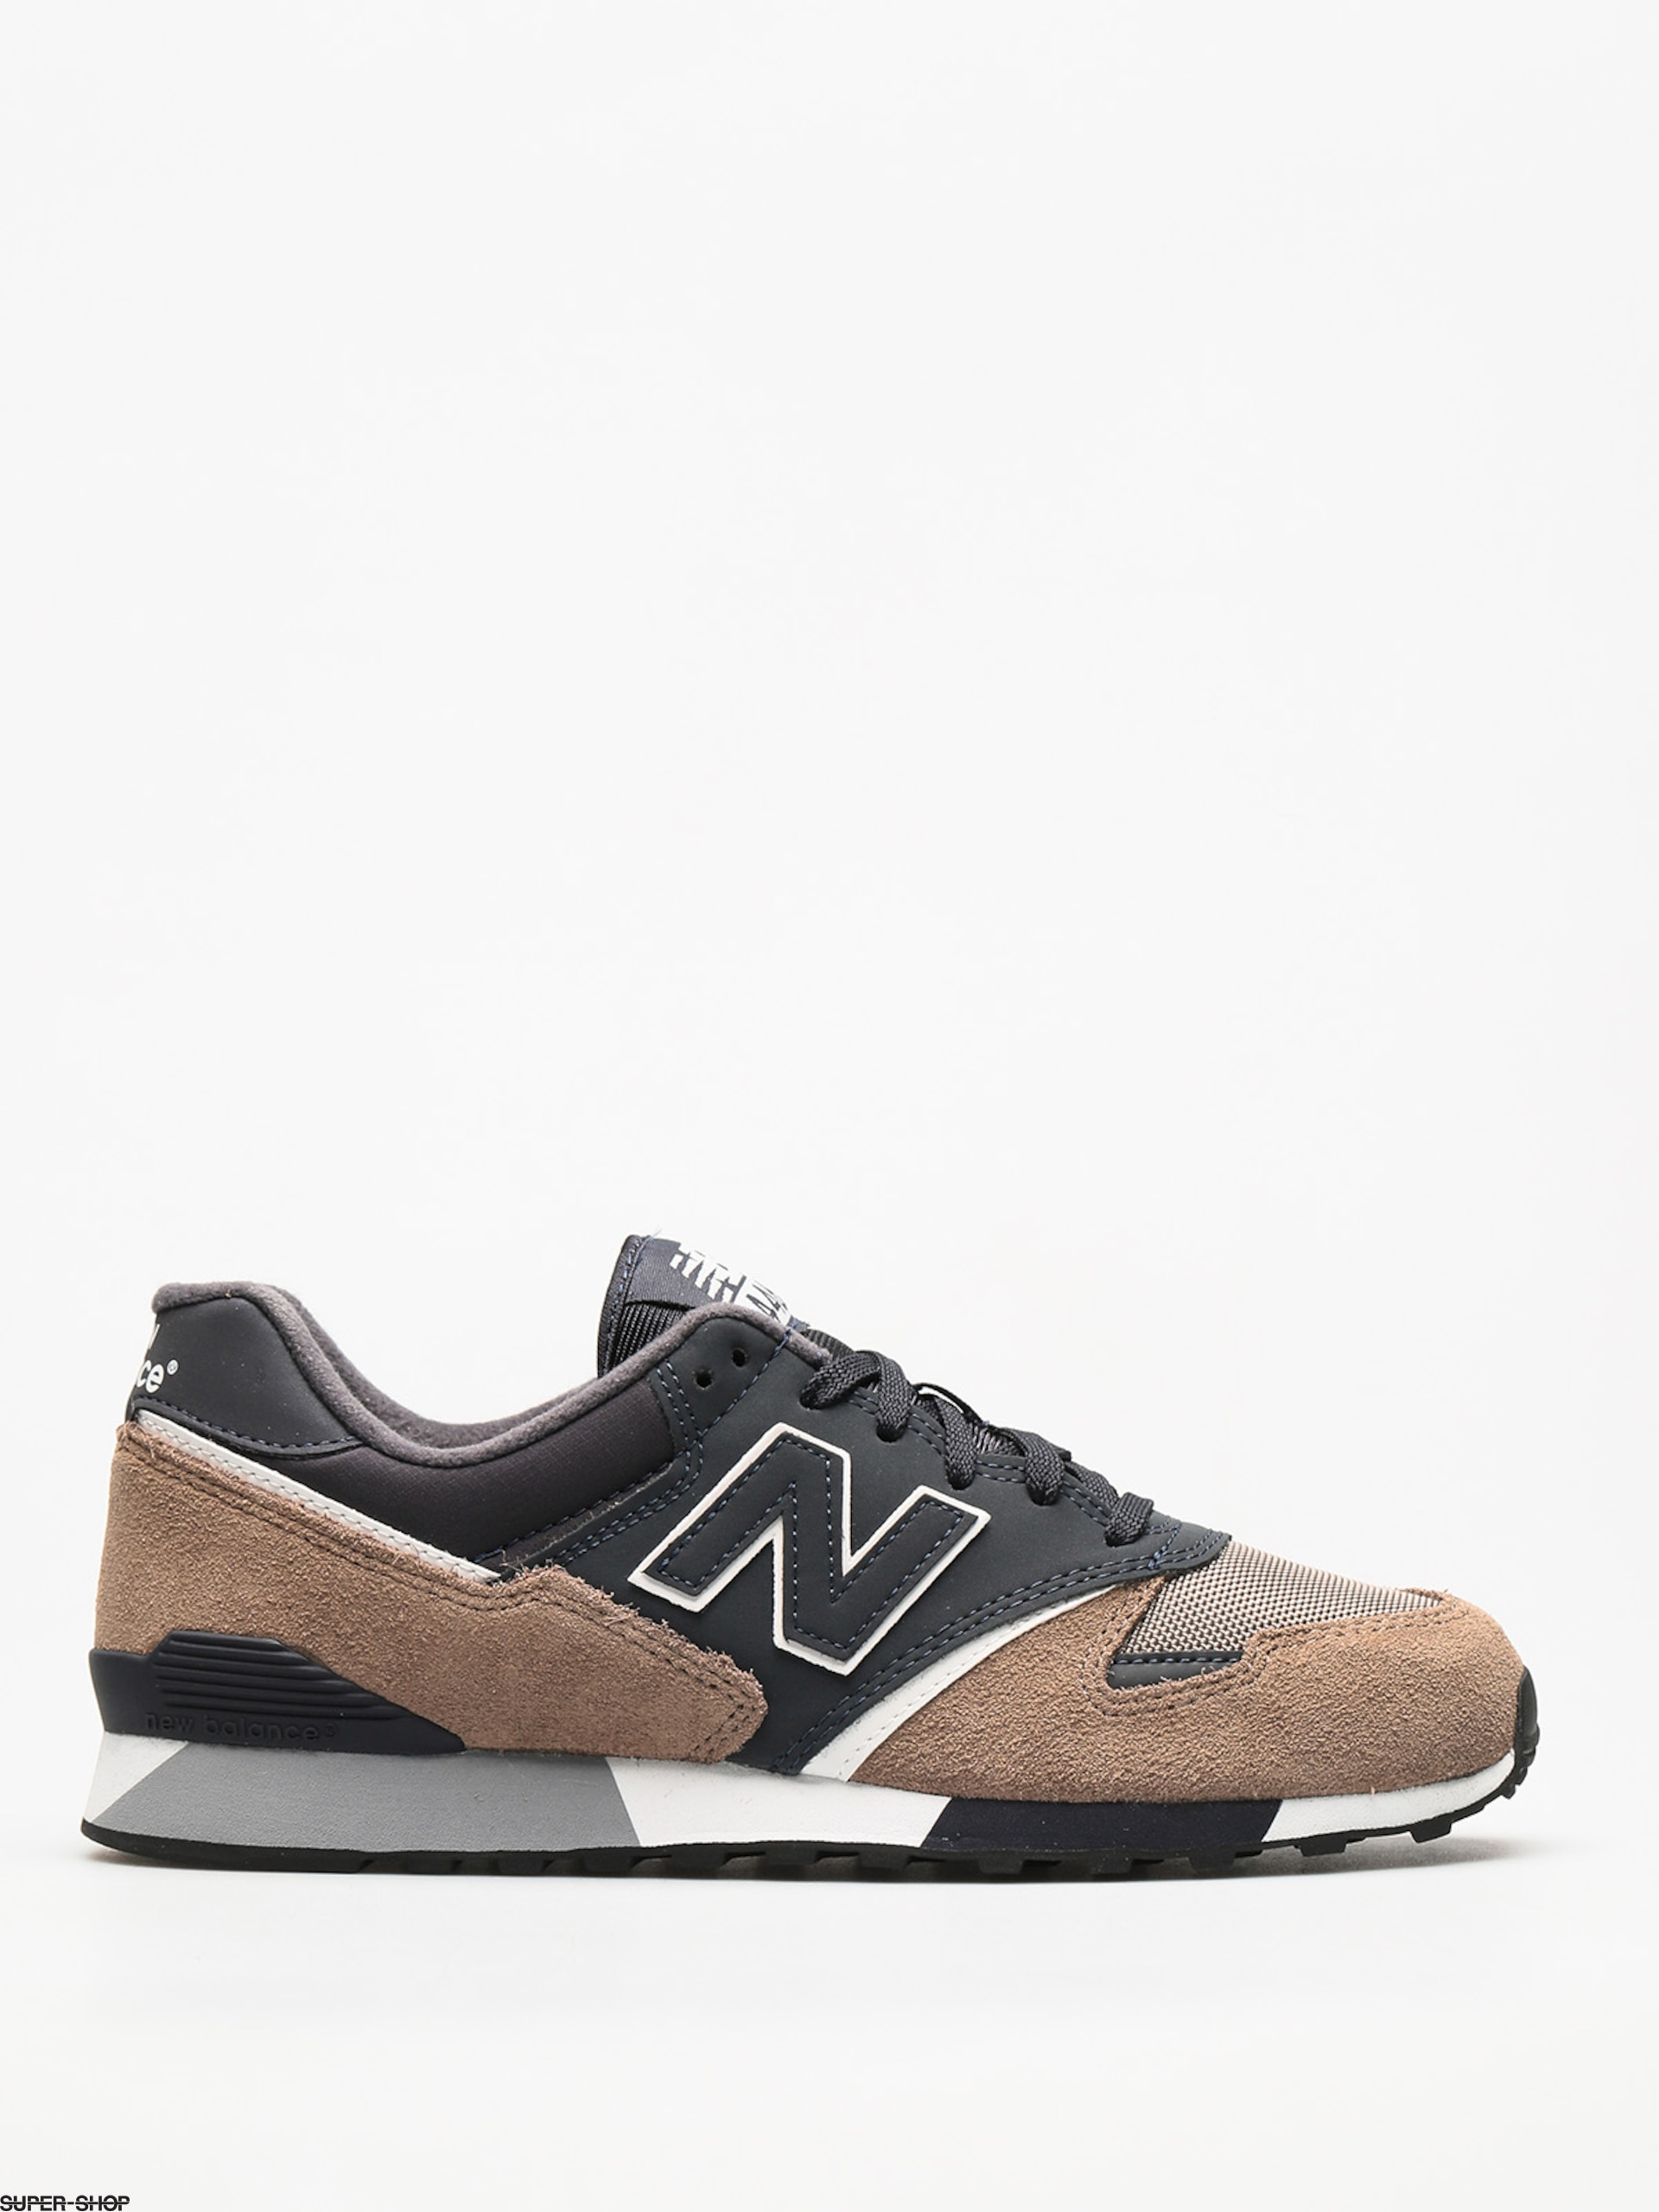 New Balance Shoes 446